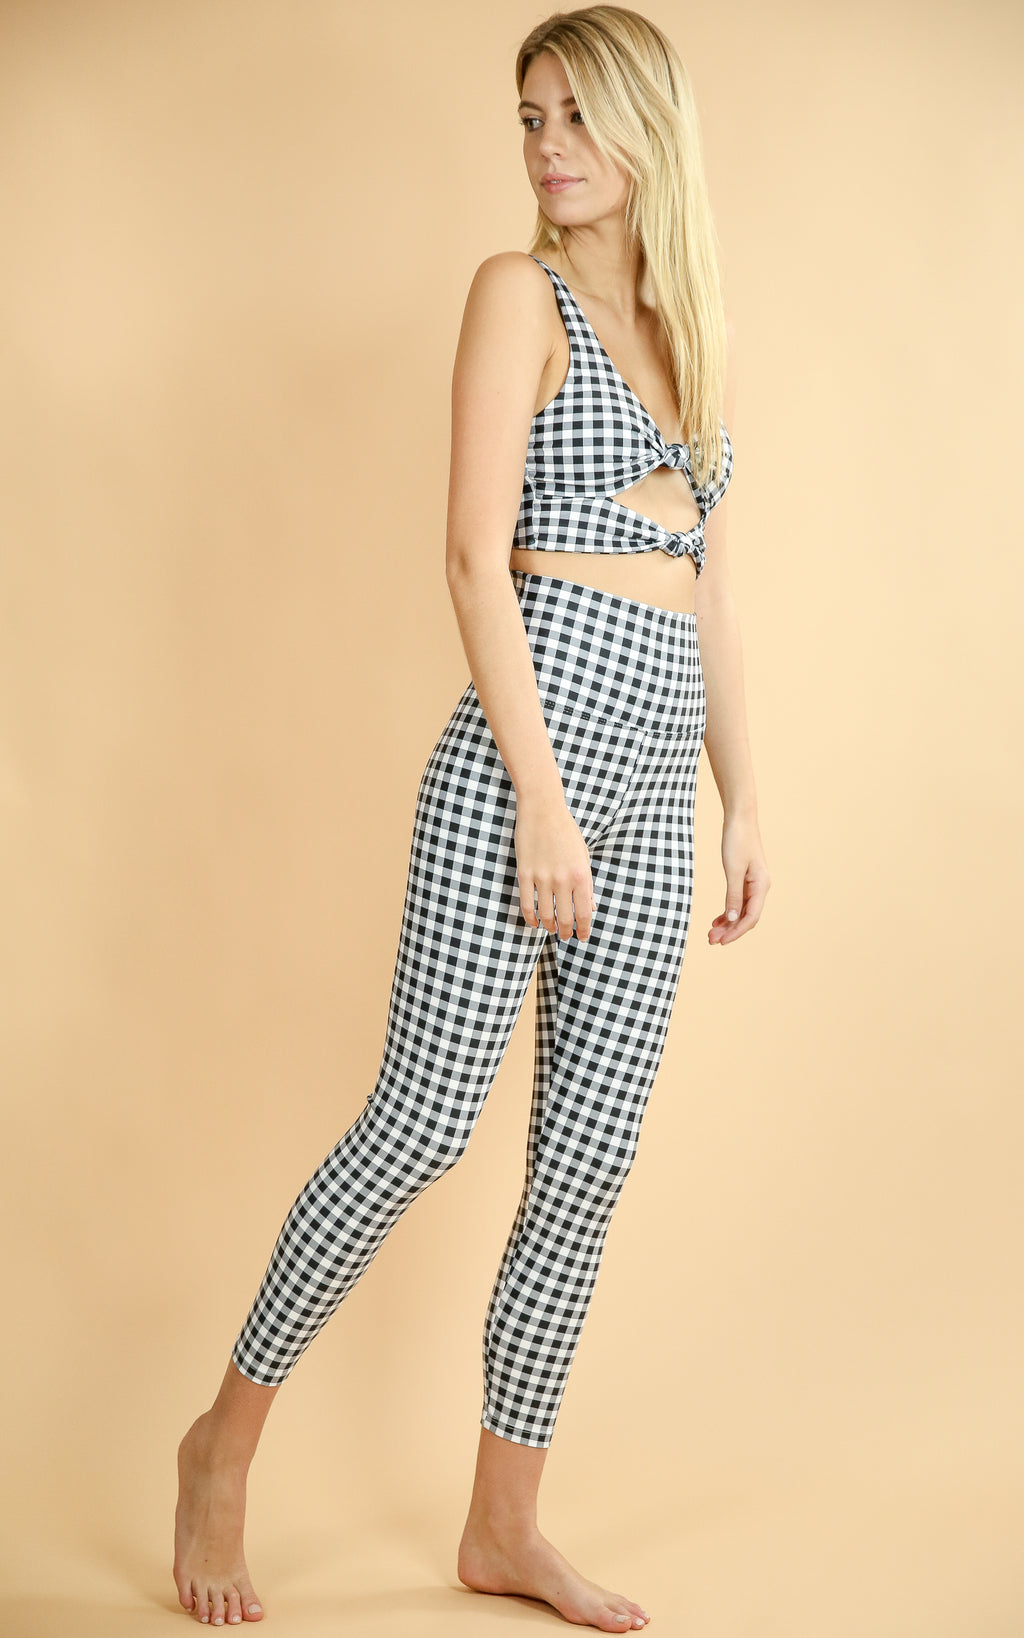 Bowie Top Gingham - Whiskey & Leather